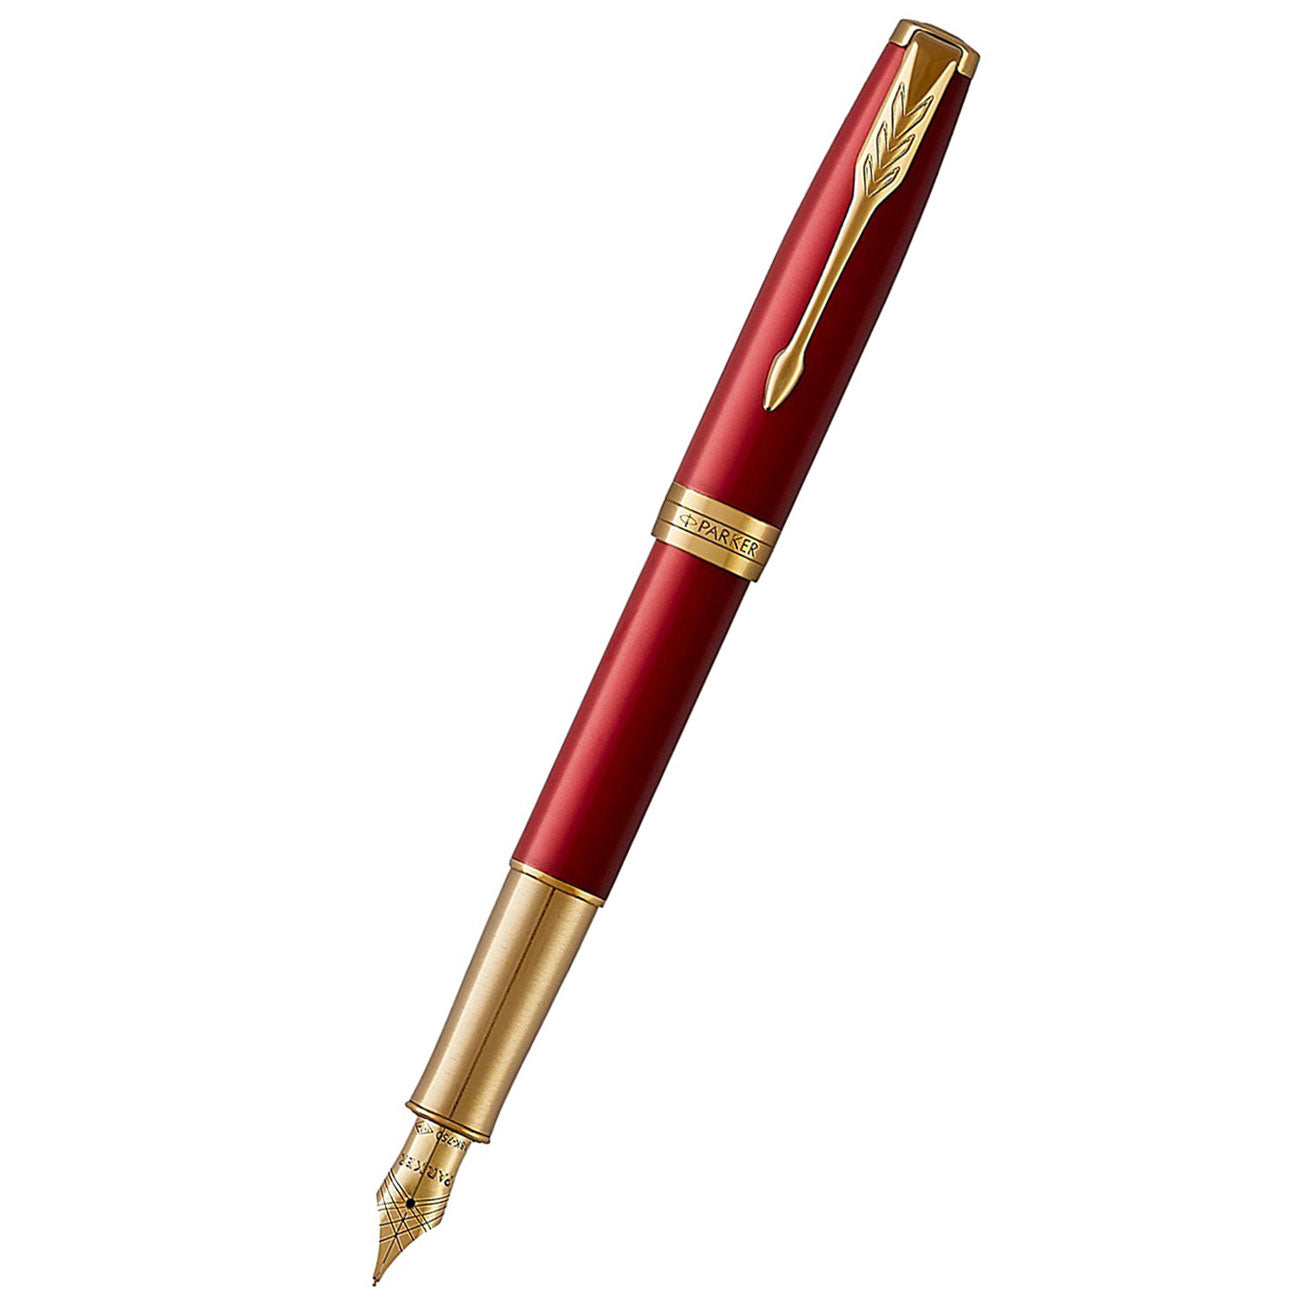 Parker Sonnet Matte Red Lacquer with Gold Trim Fountain Pen - F 18K nib